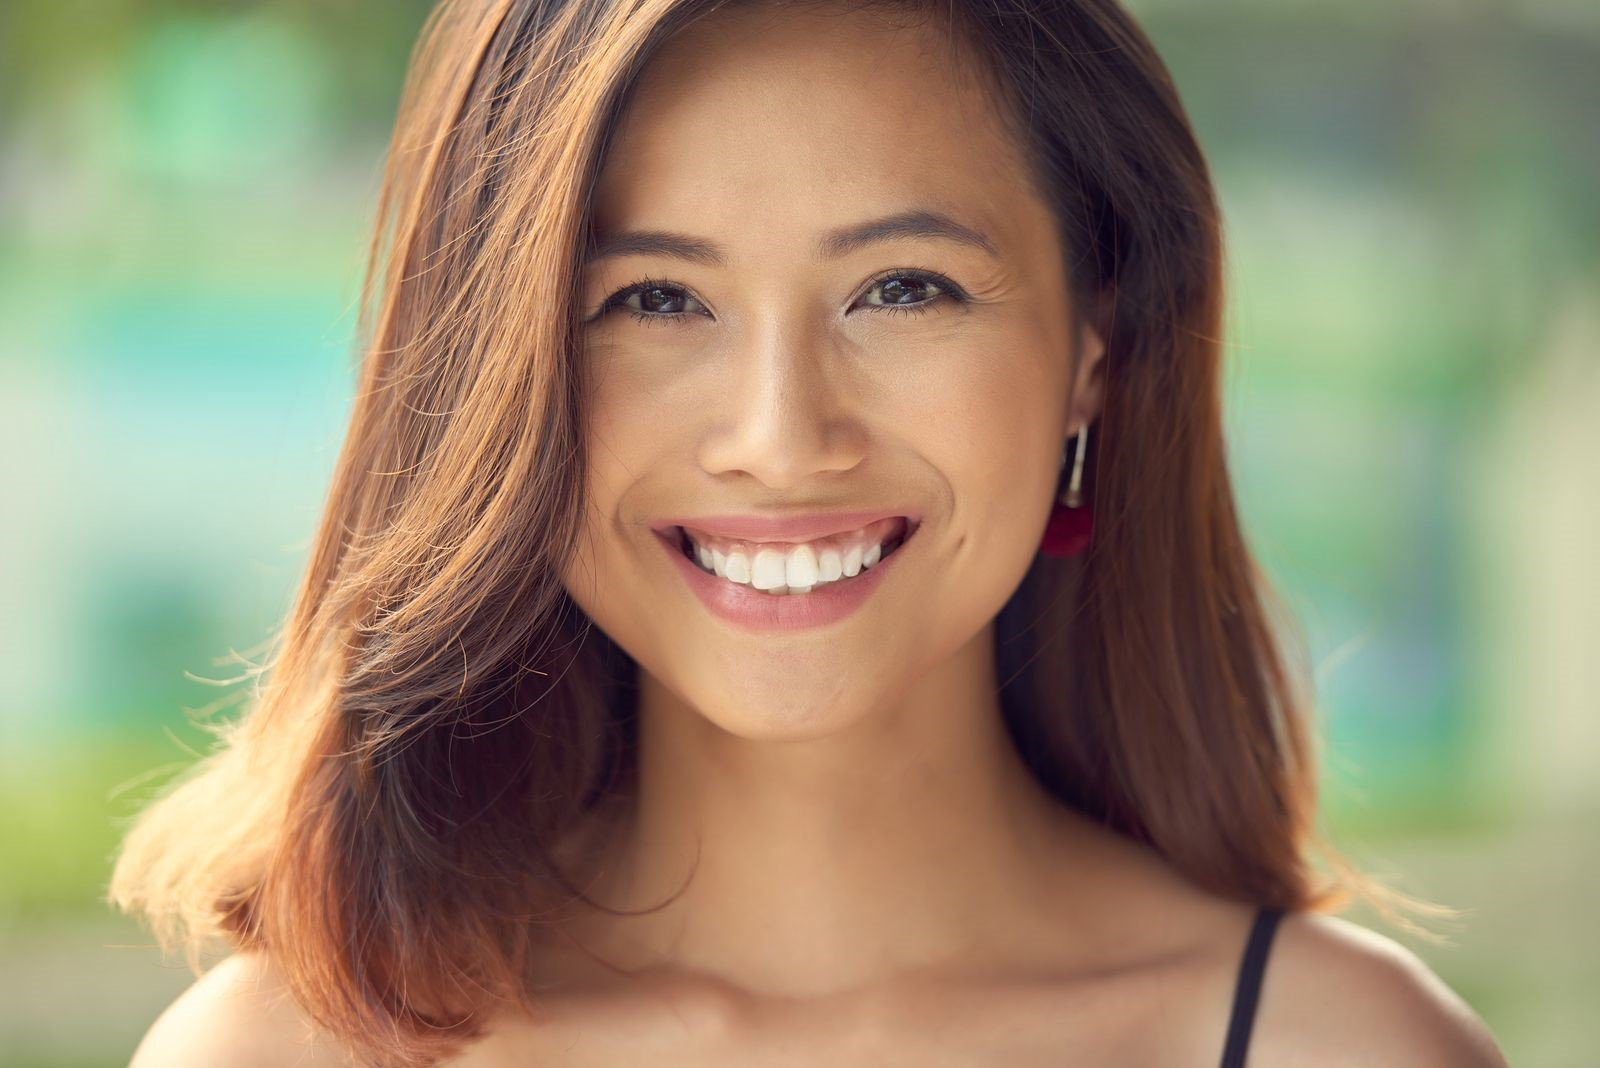 Show Off Your Smile Confidently With the Help of Cosmetic Dentistry